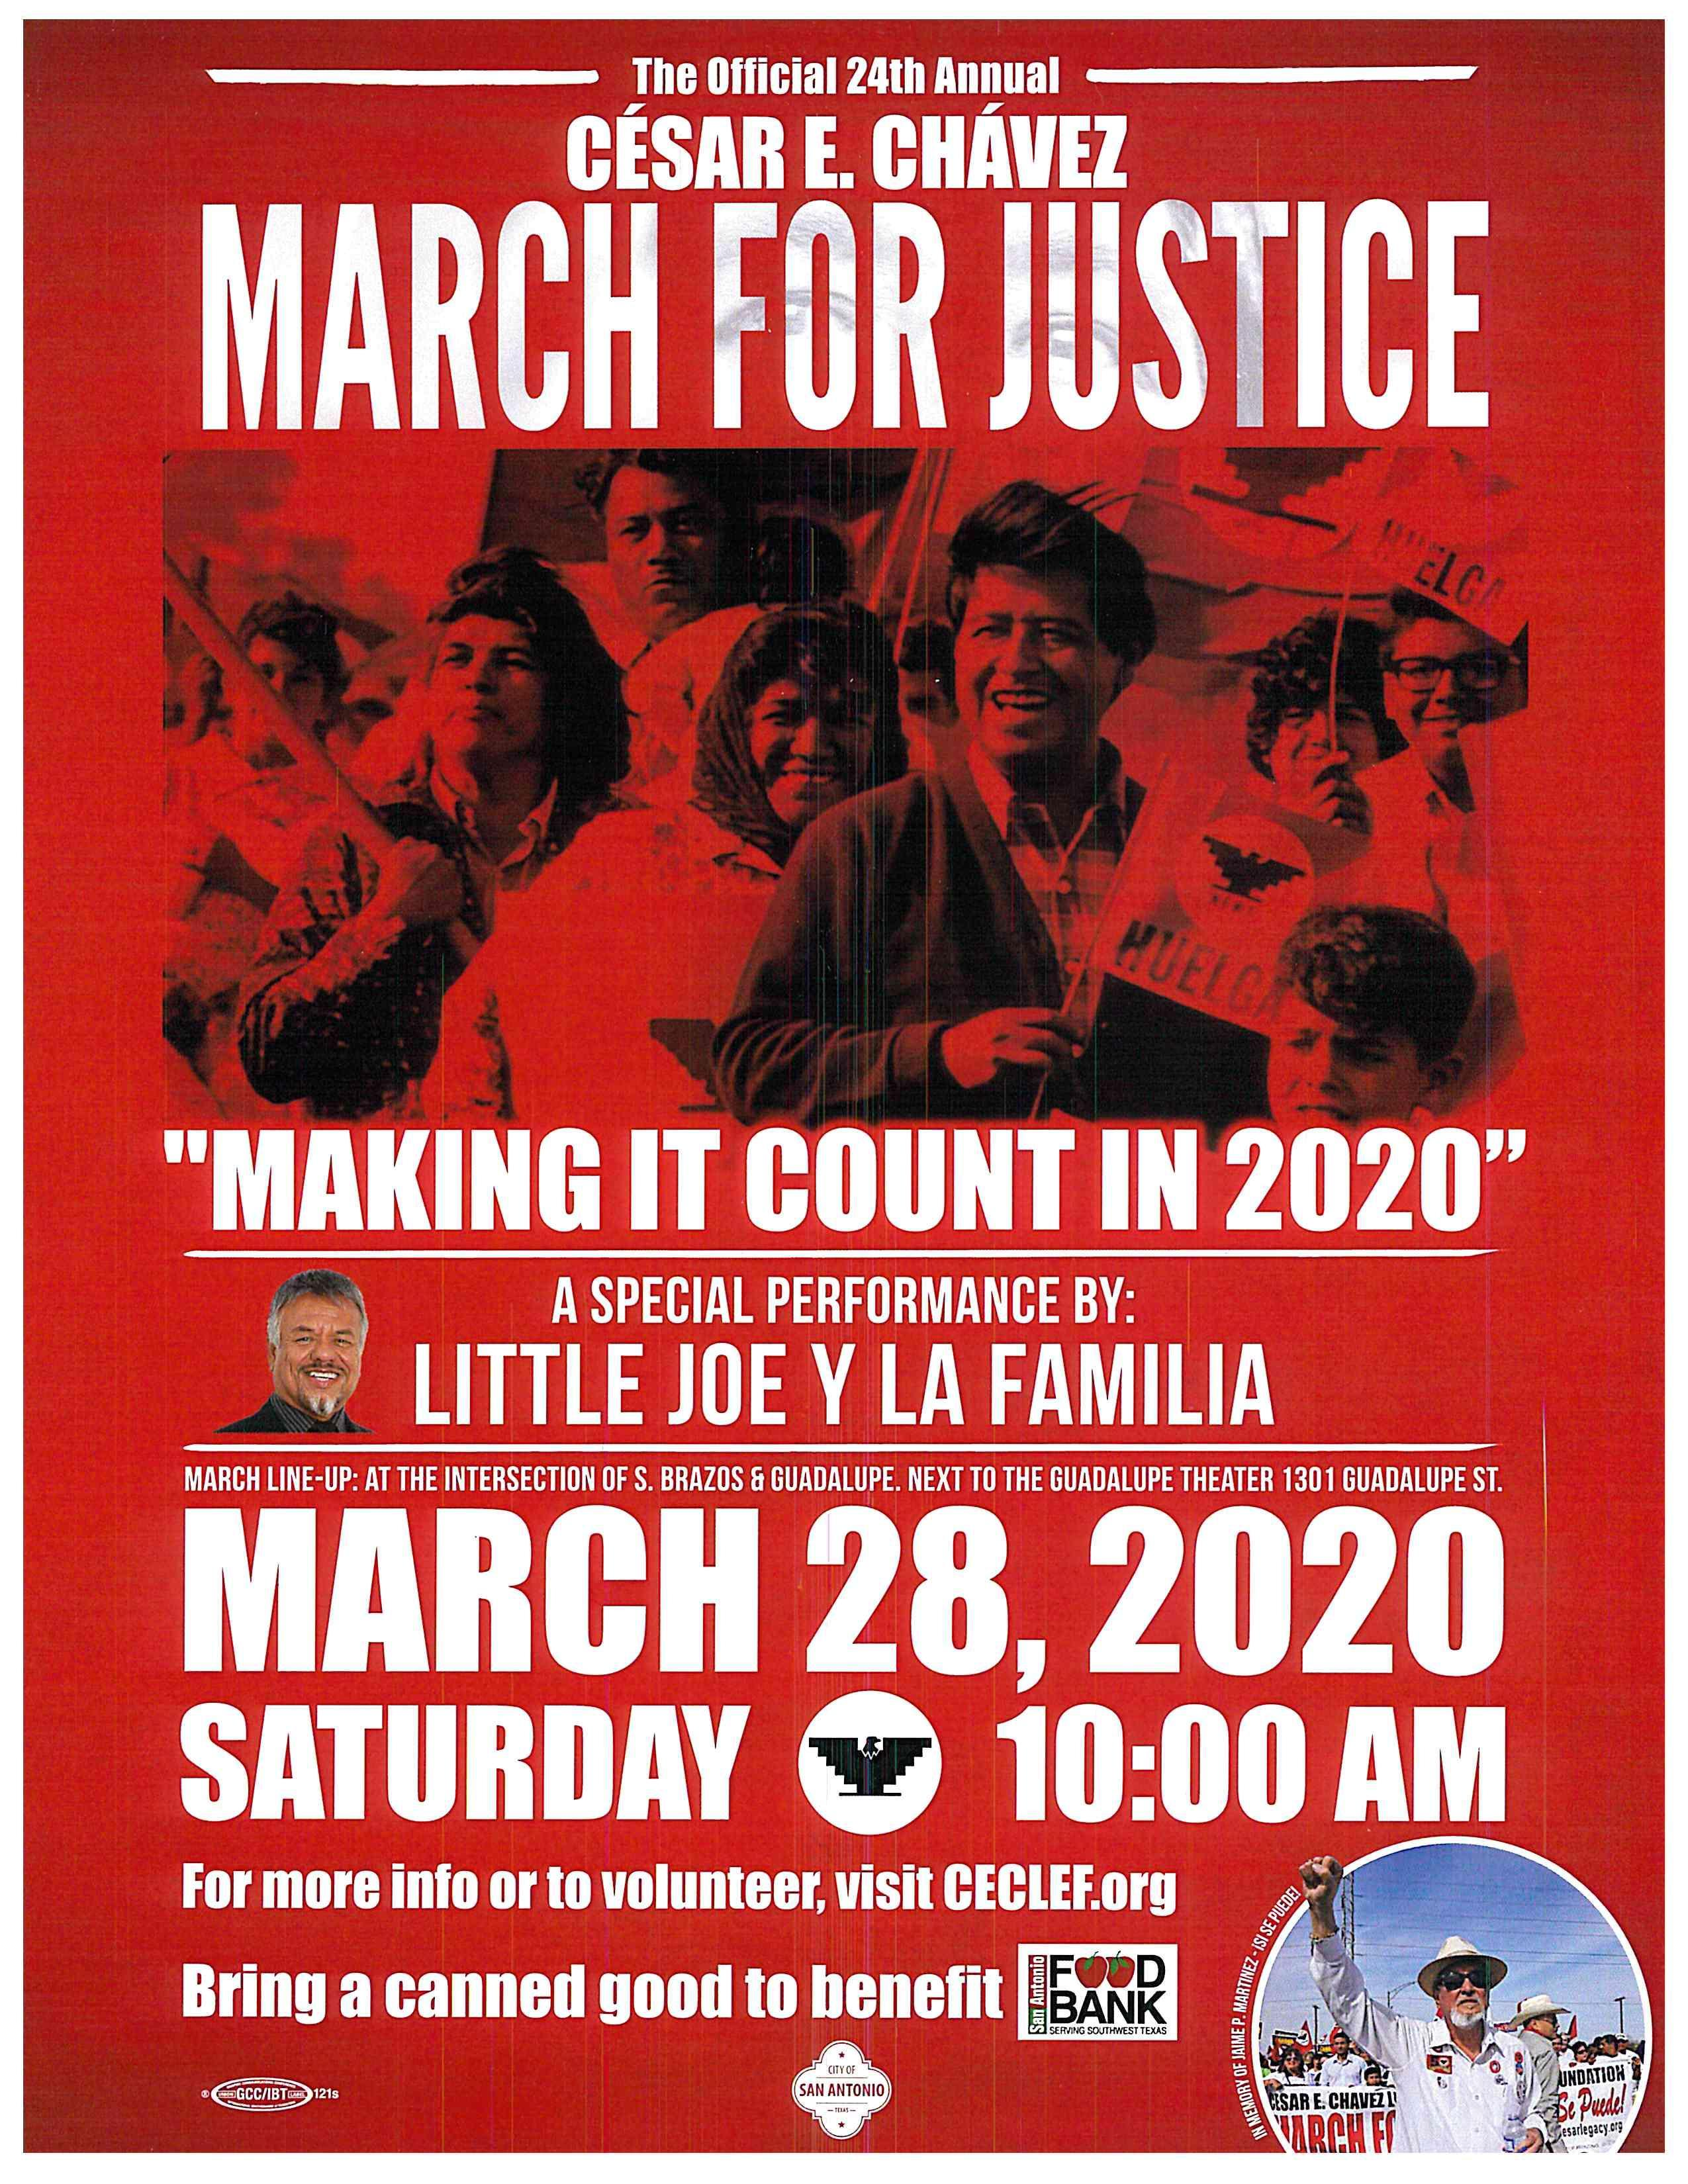 Flyer Information for Cesar E Chavez March